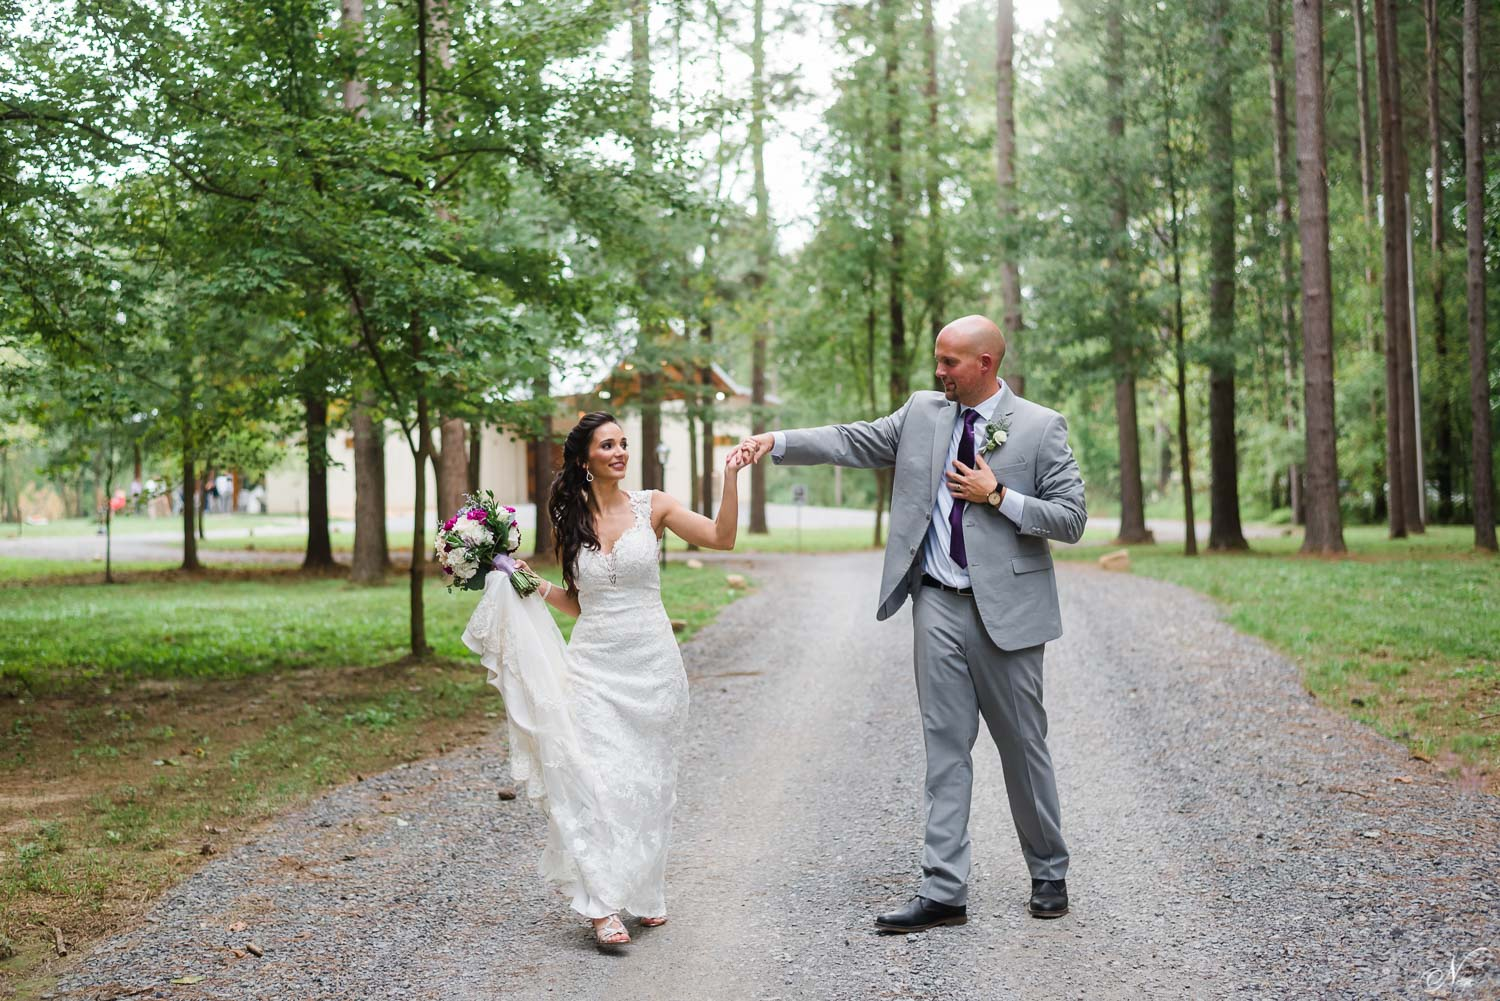 bride and groom dancing onwindy road to Timber framed wedding venue in Delano TN